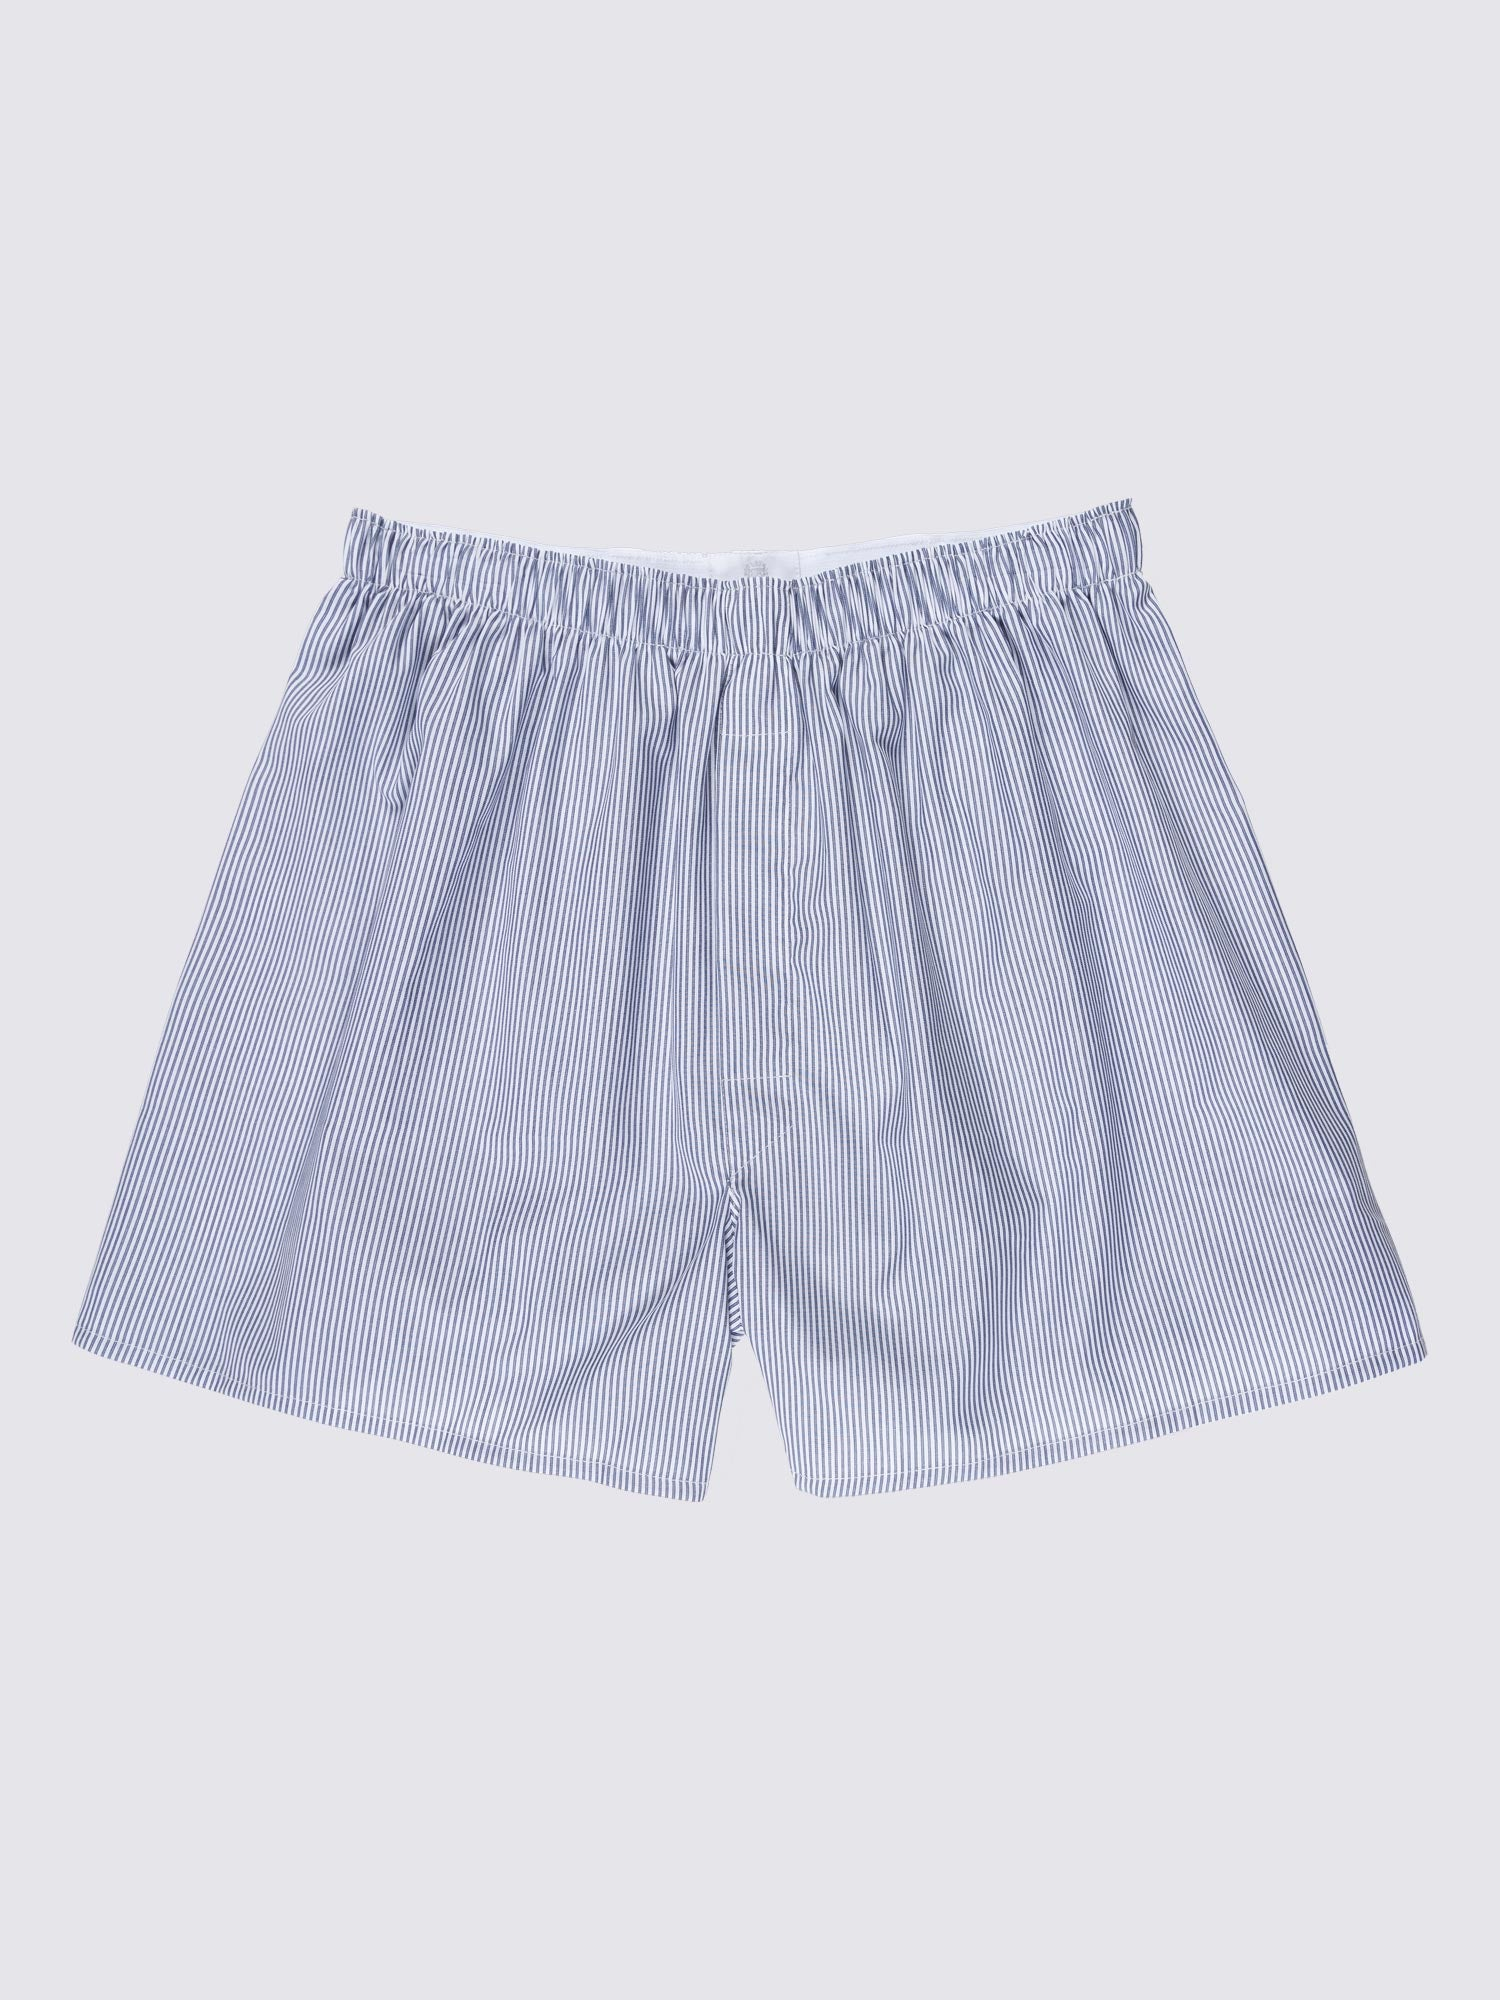 Boxer Short, pin stripe